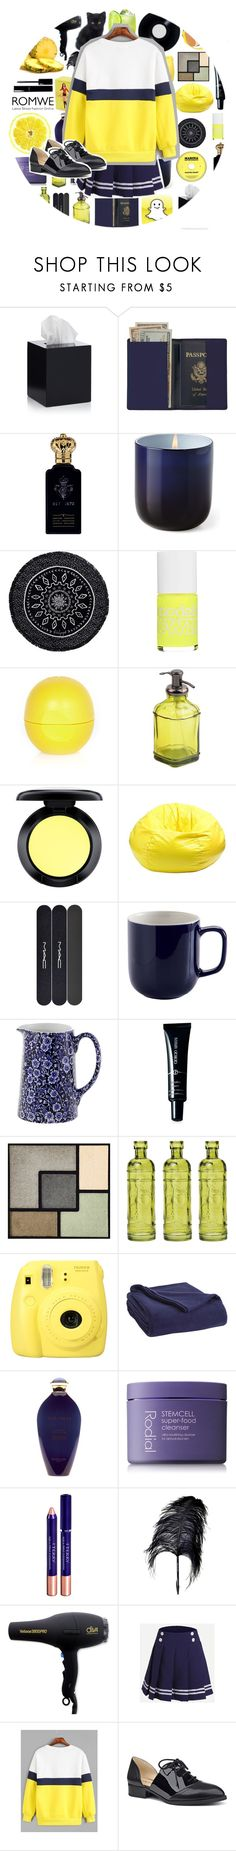 """Blue and Yellow with ROMWE"" by phaedra-solaris ❤ liked on Polyvore featuring Jonathan Adler, Royce Leather, Clive Christian, The Beach People, Models Own, River Island, MAC Cosmetics, Gold Medal, Price & Kensington and Burleigh"